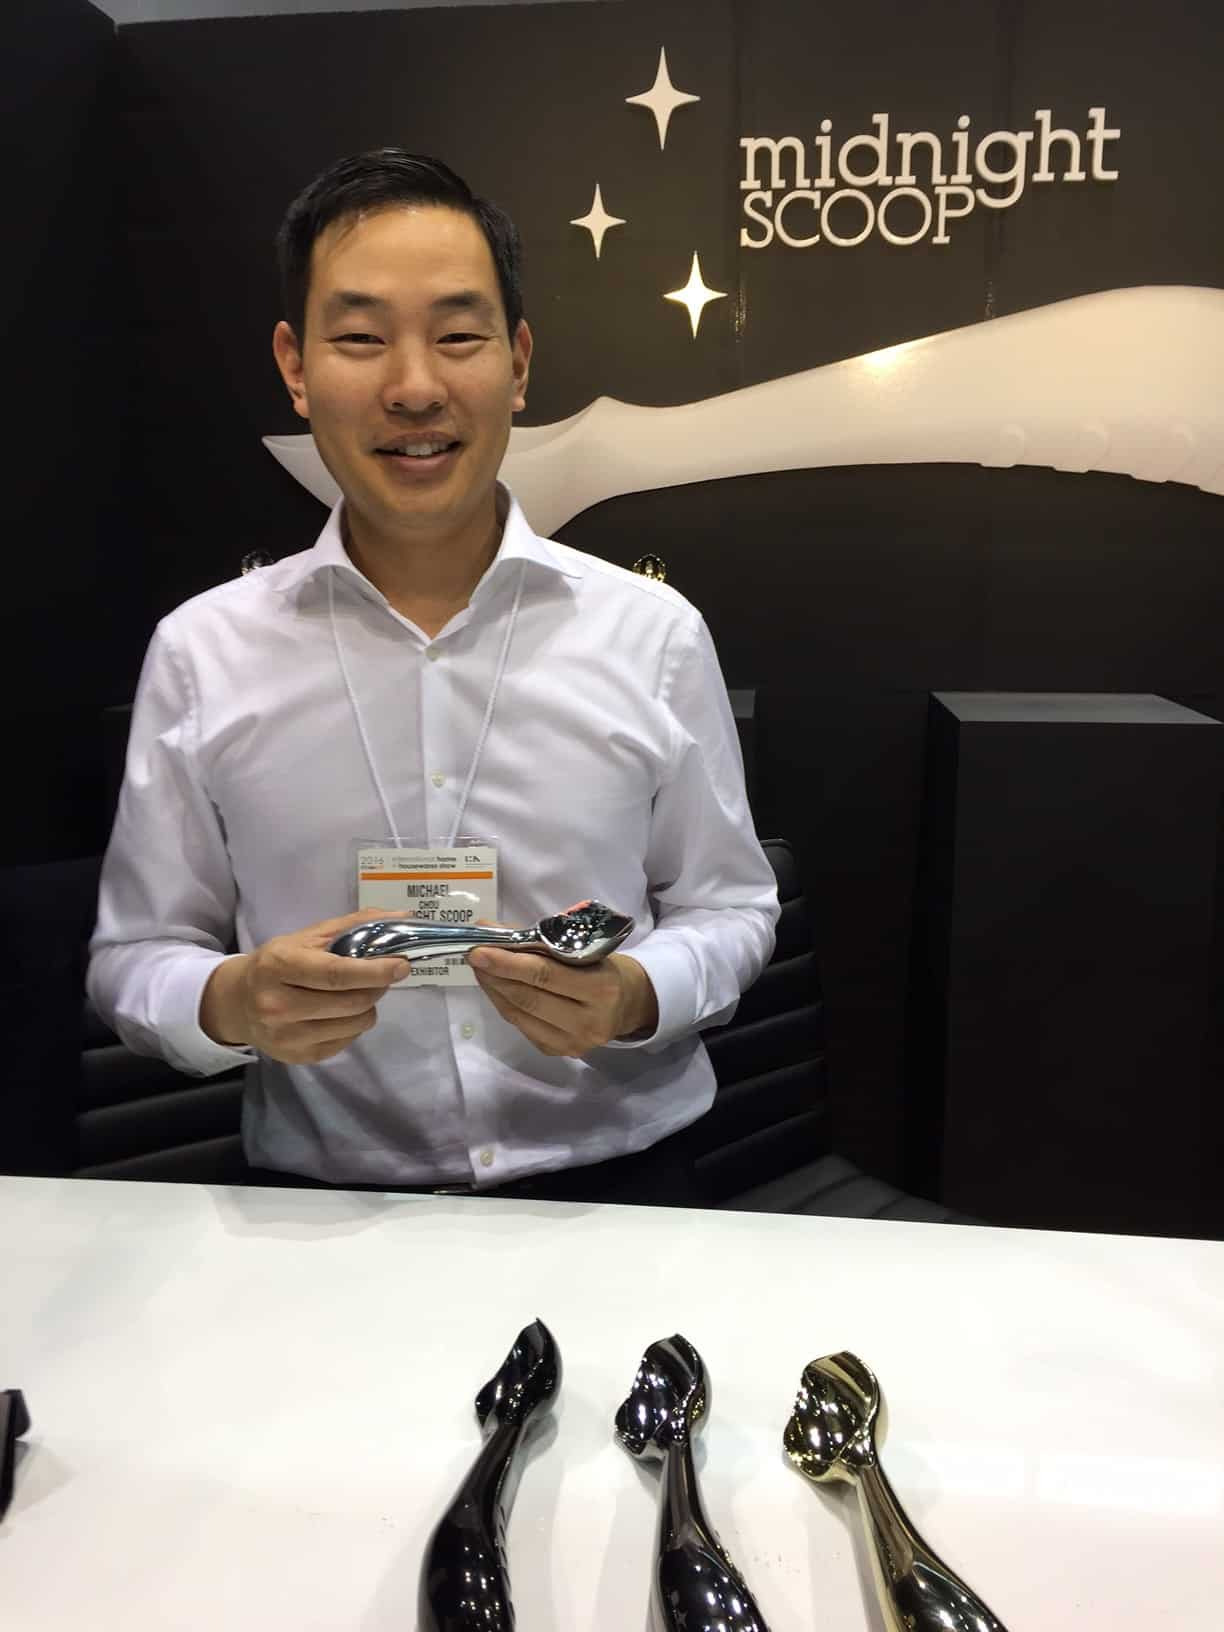 Michael Chou with his Midnight Scoop